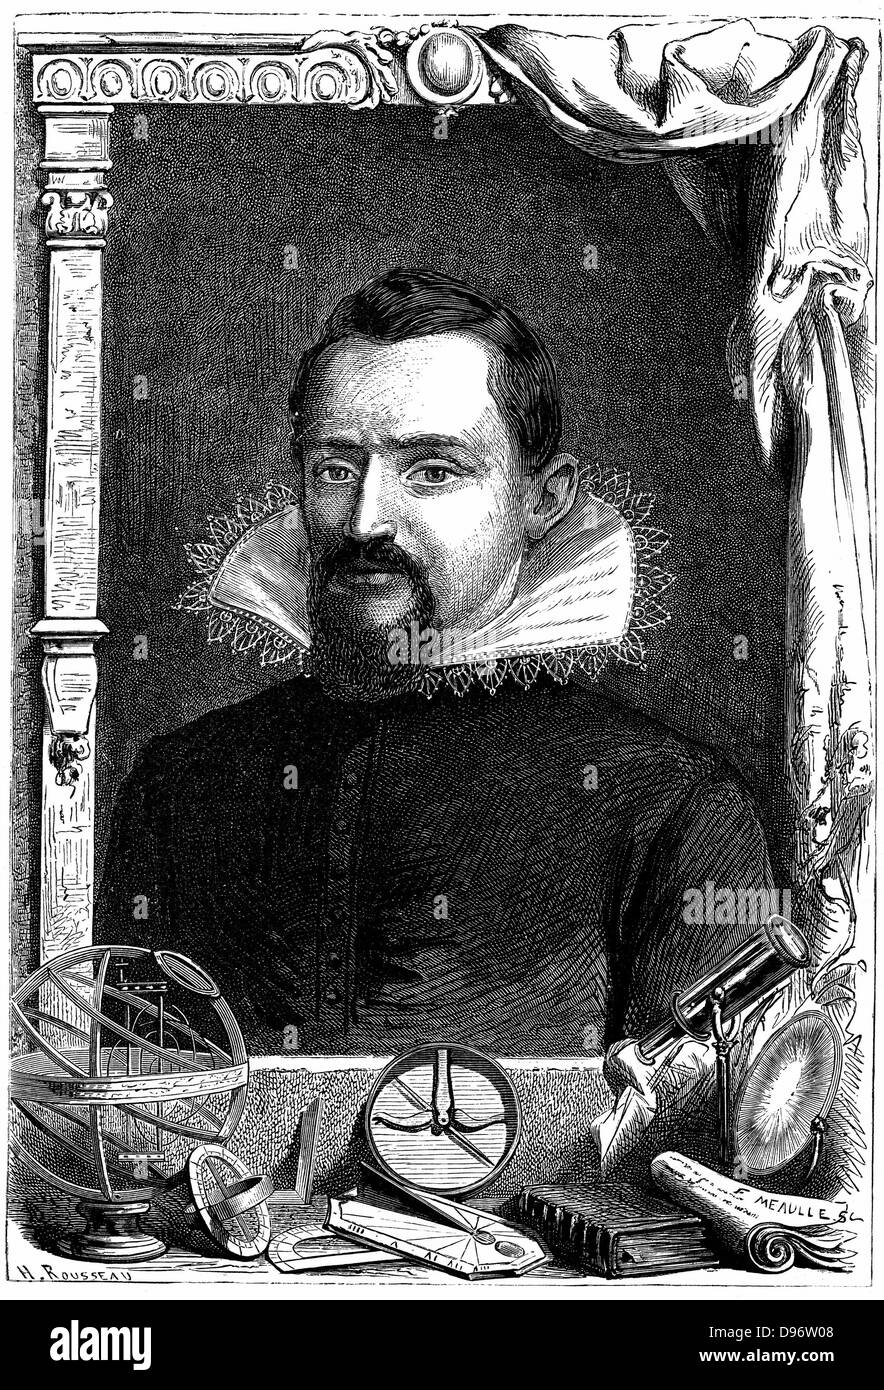 Johannes Kepler (1571-1630) German astronomer. Wood engraving, Paris c1870 - Stock Image